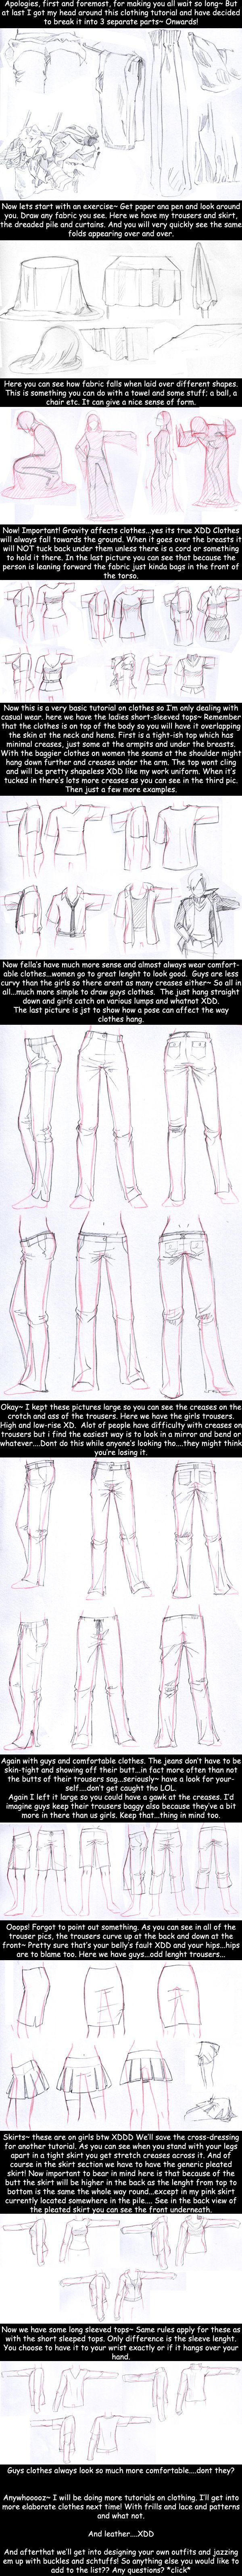 How to Draw - Tutorial: Clothes and Folds for Comic / Manga Panel Design Reference: